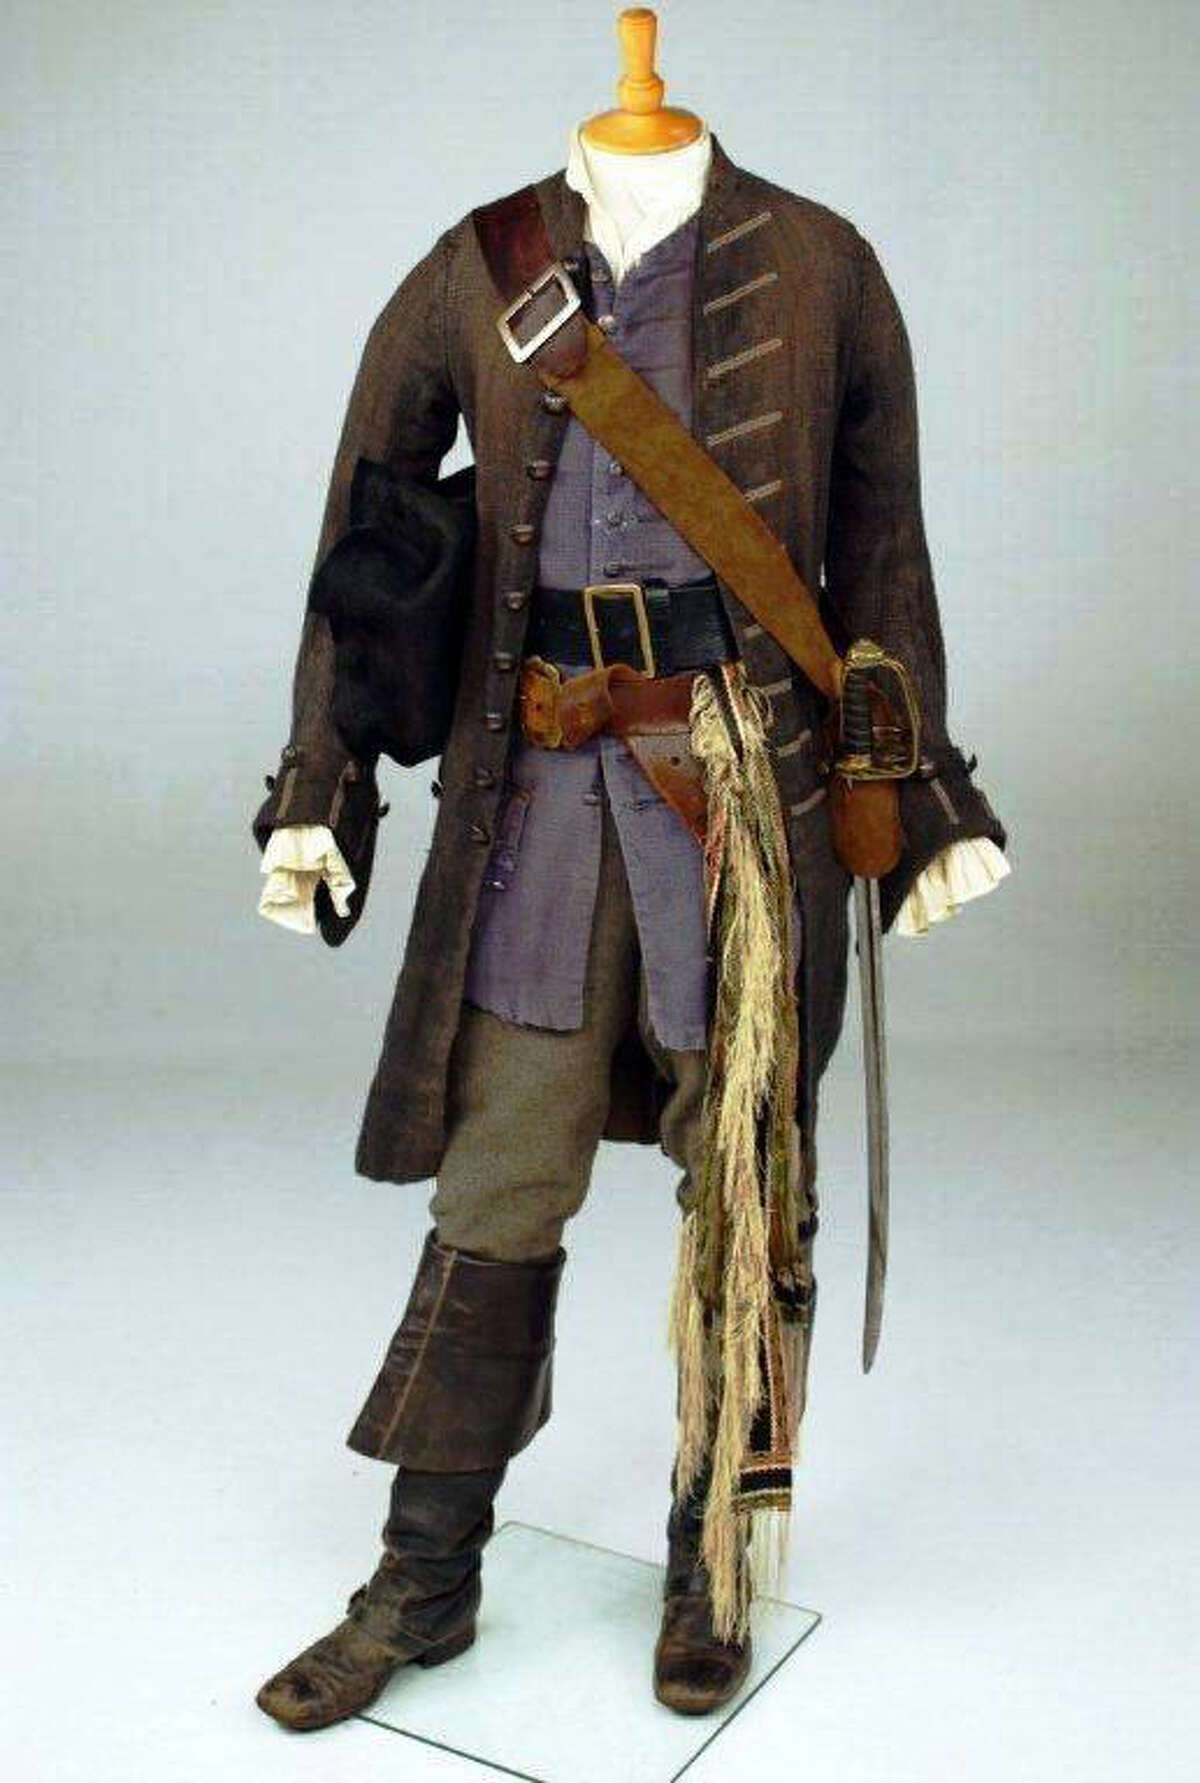 """Penny Rose won a best costume award from the Academy of Science Fiction, Fantasy and Horror Films for Depp's costume in """"Pirates of the Caribbean: The Curse of the Black Pearl."""""""